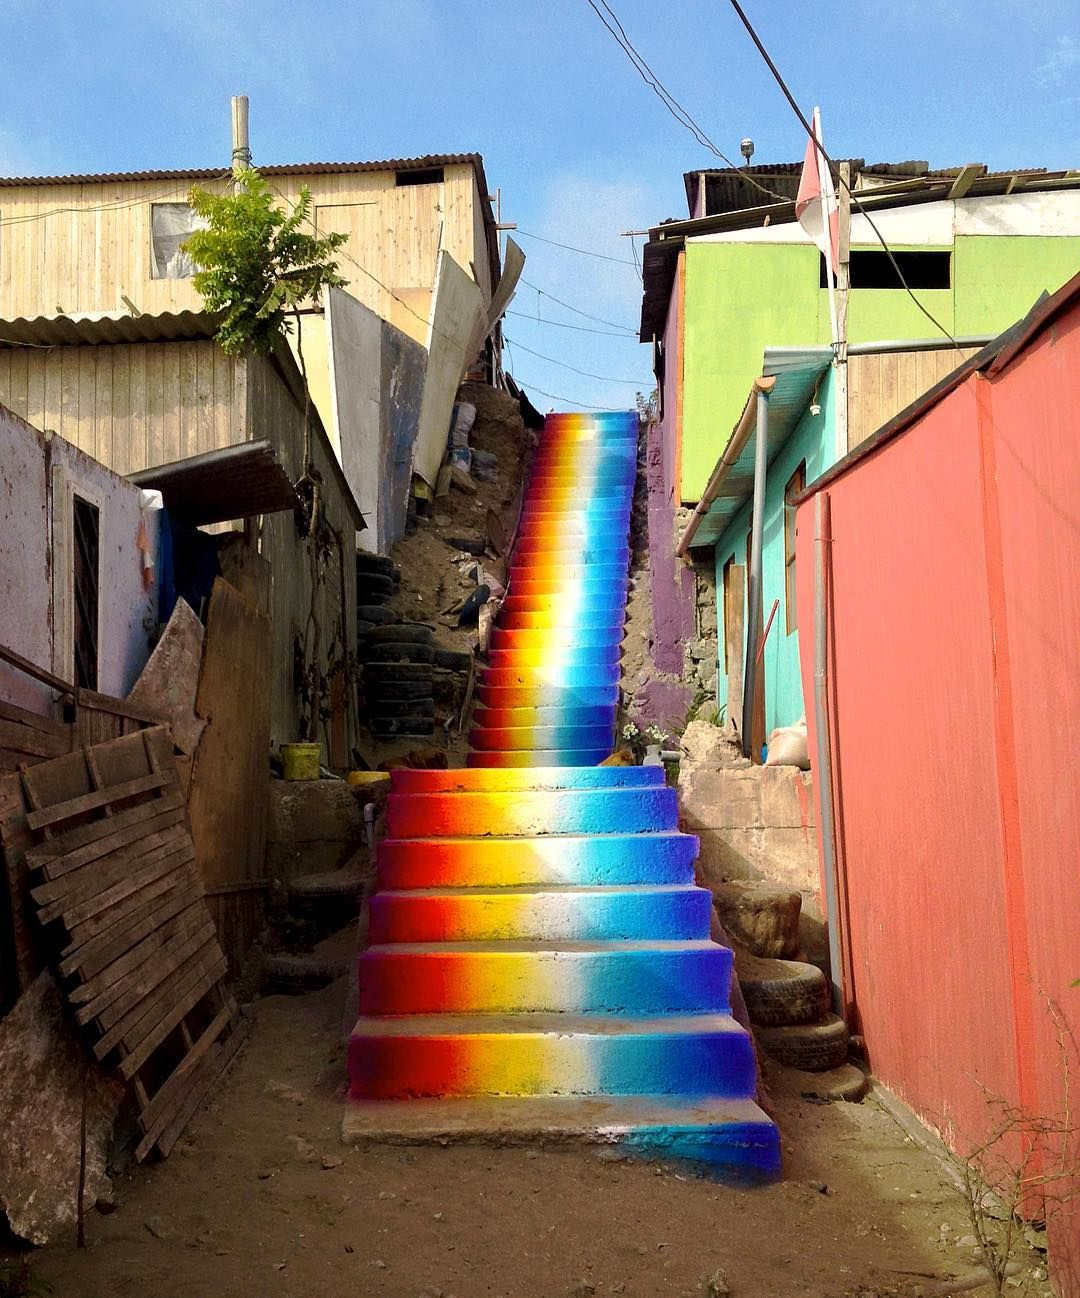 High Quality Snake Of Light, A Long Cement Stairway Painted With Spectral Colors That  Shine Brightly In